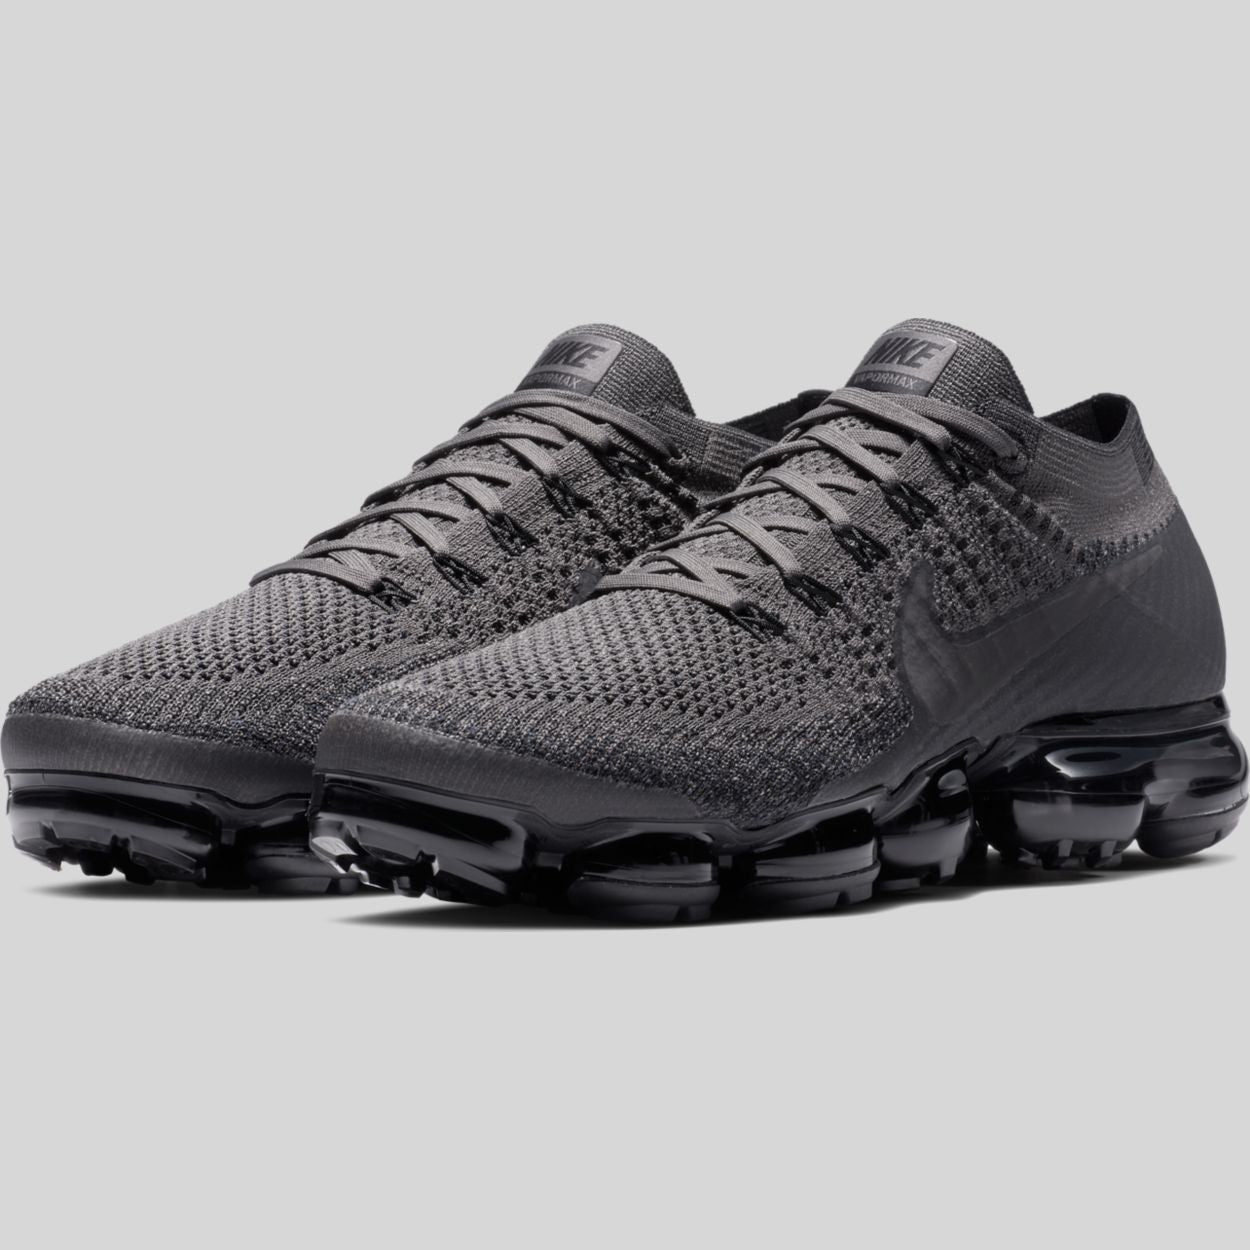 03df2a55a11f Nike AIR VAPORMAX FLYKNIT Midnight Fog Multi-Color-Black (849558-009 ...